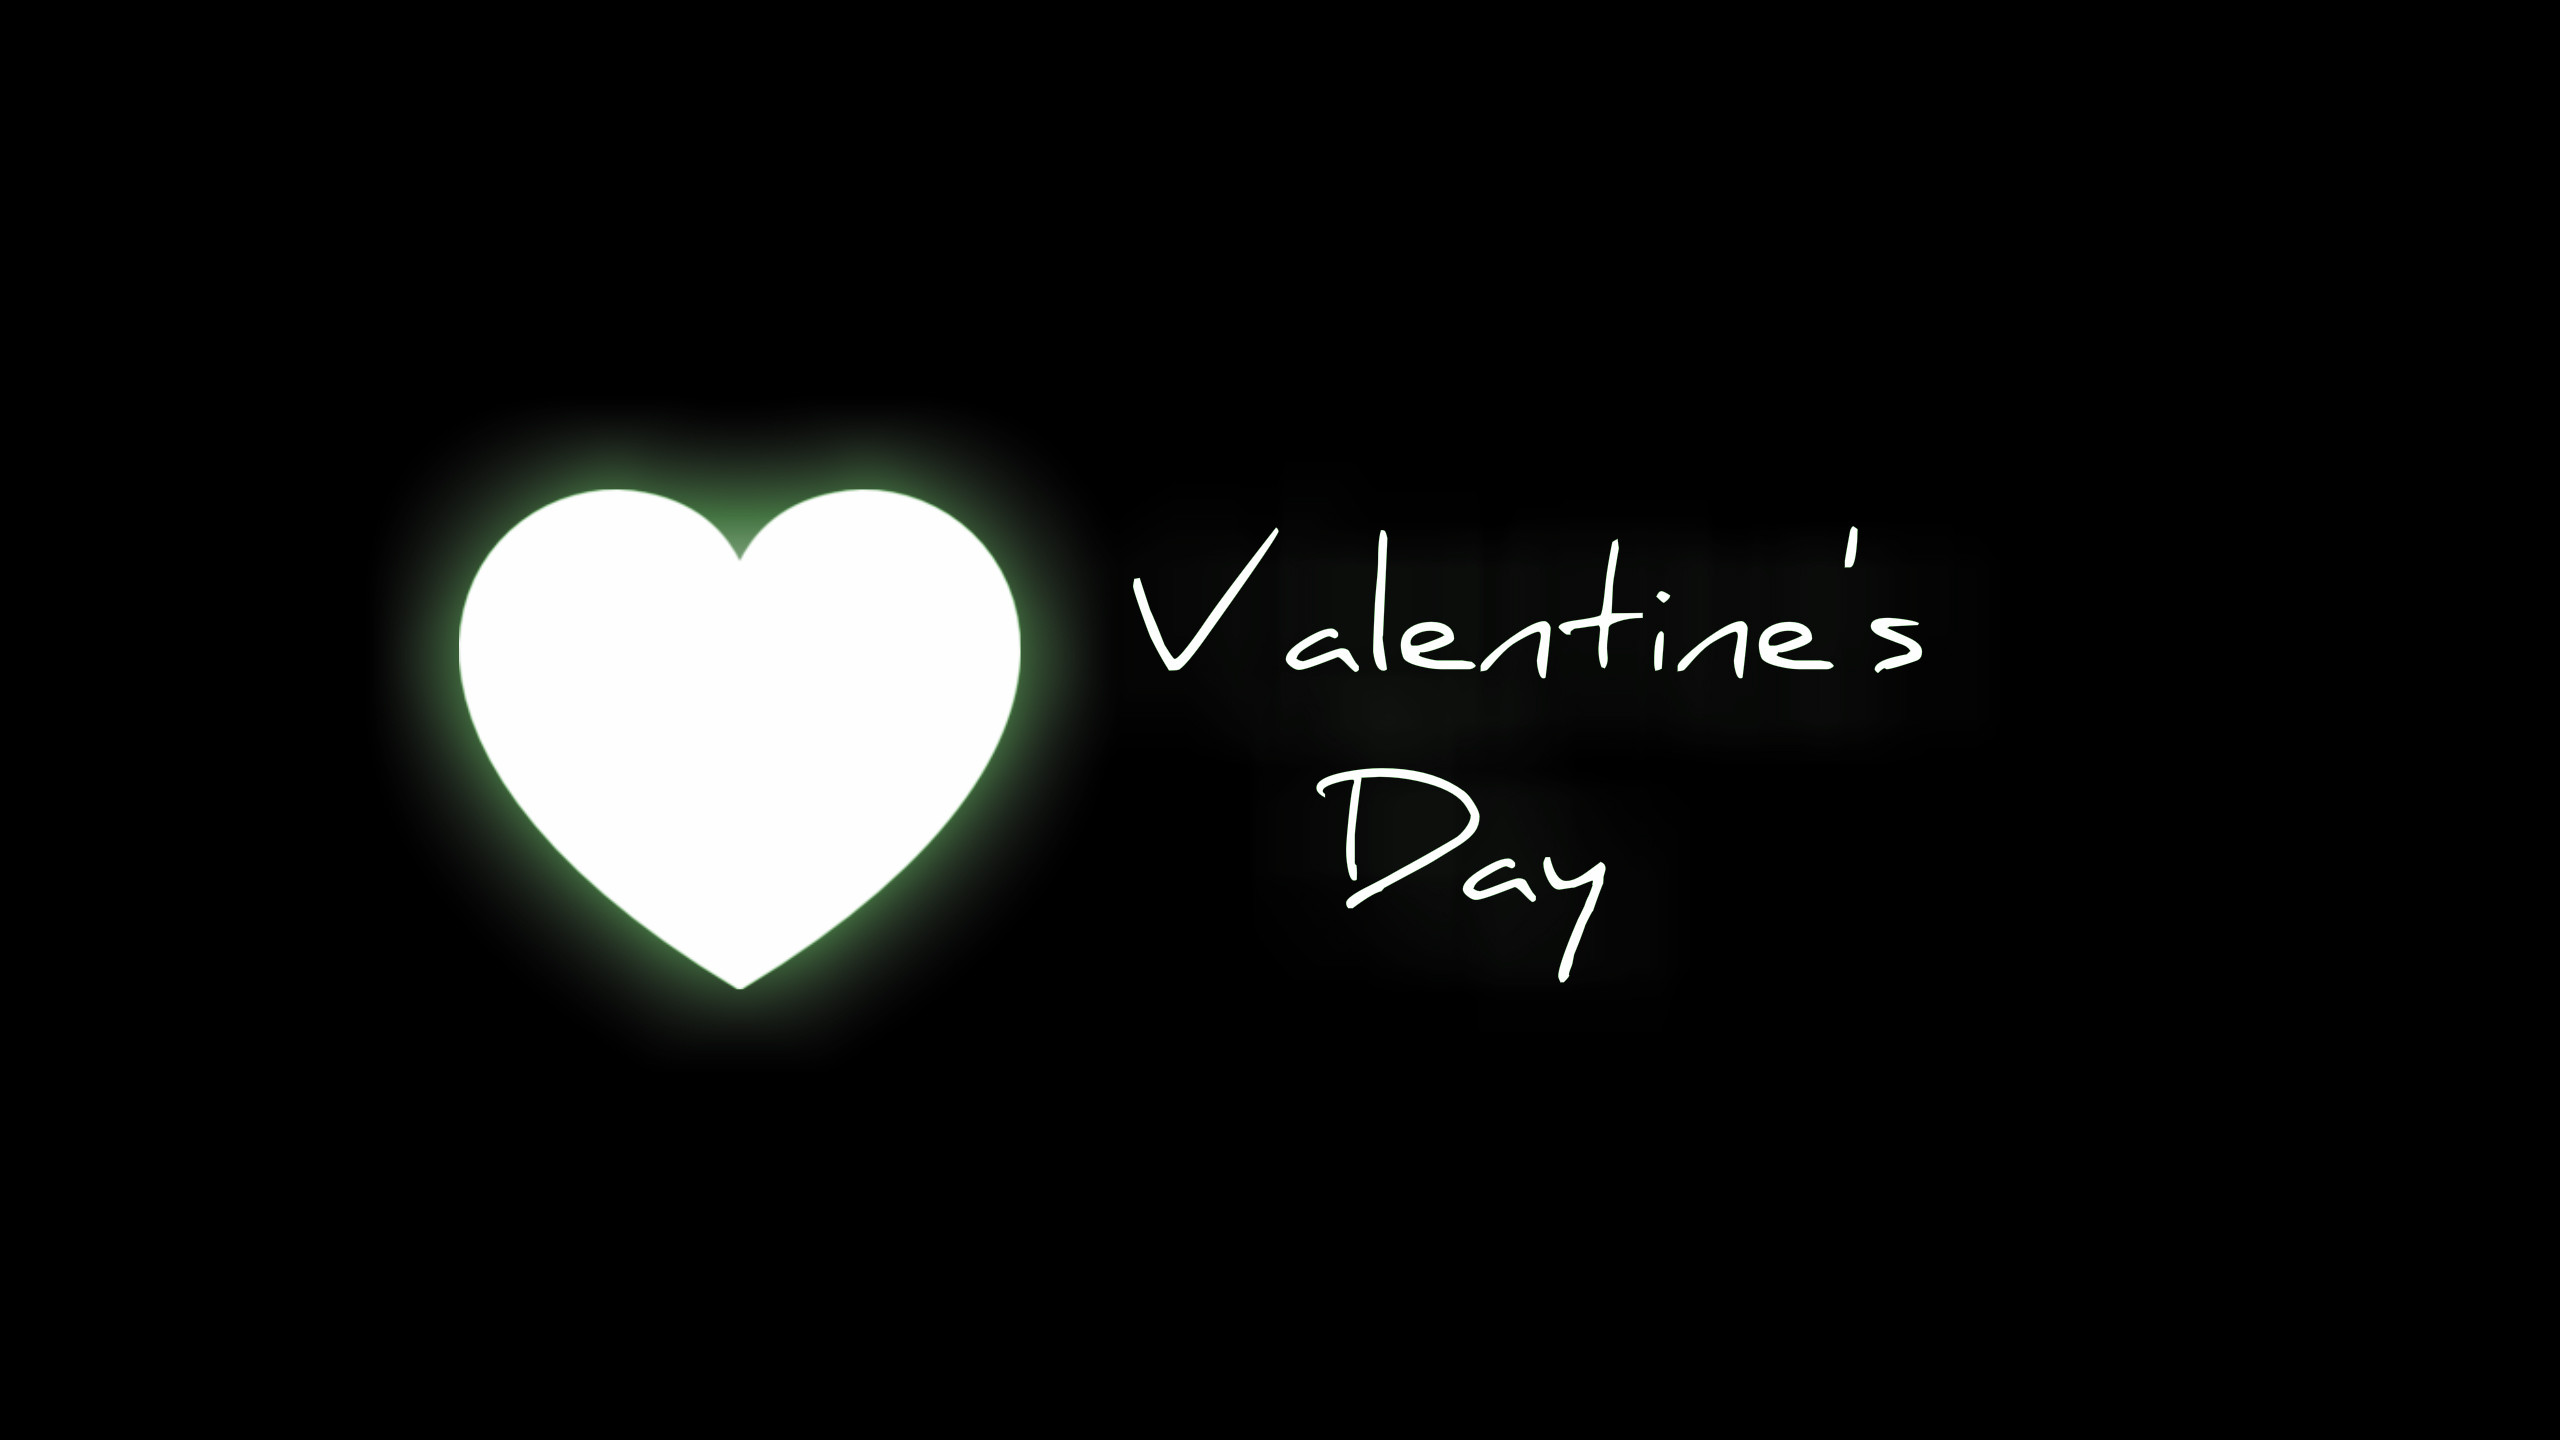 2560x1440 Valentines Day Clip Art Black and White Heart Wallpapers - The .